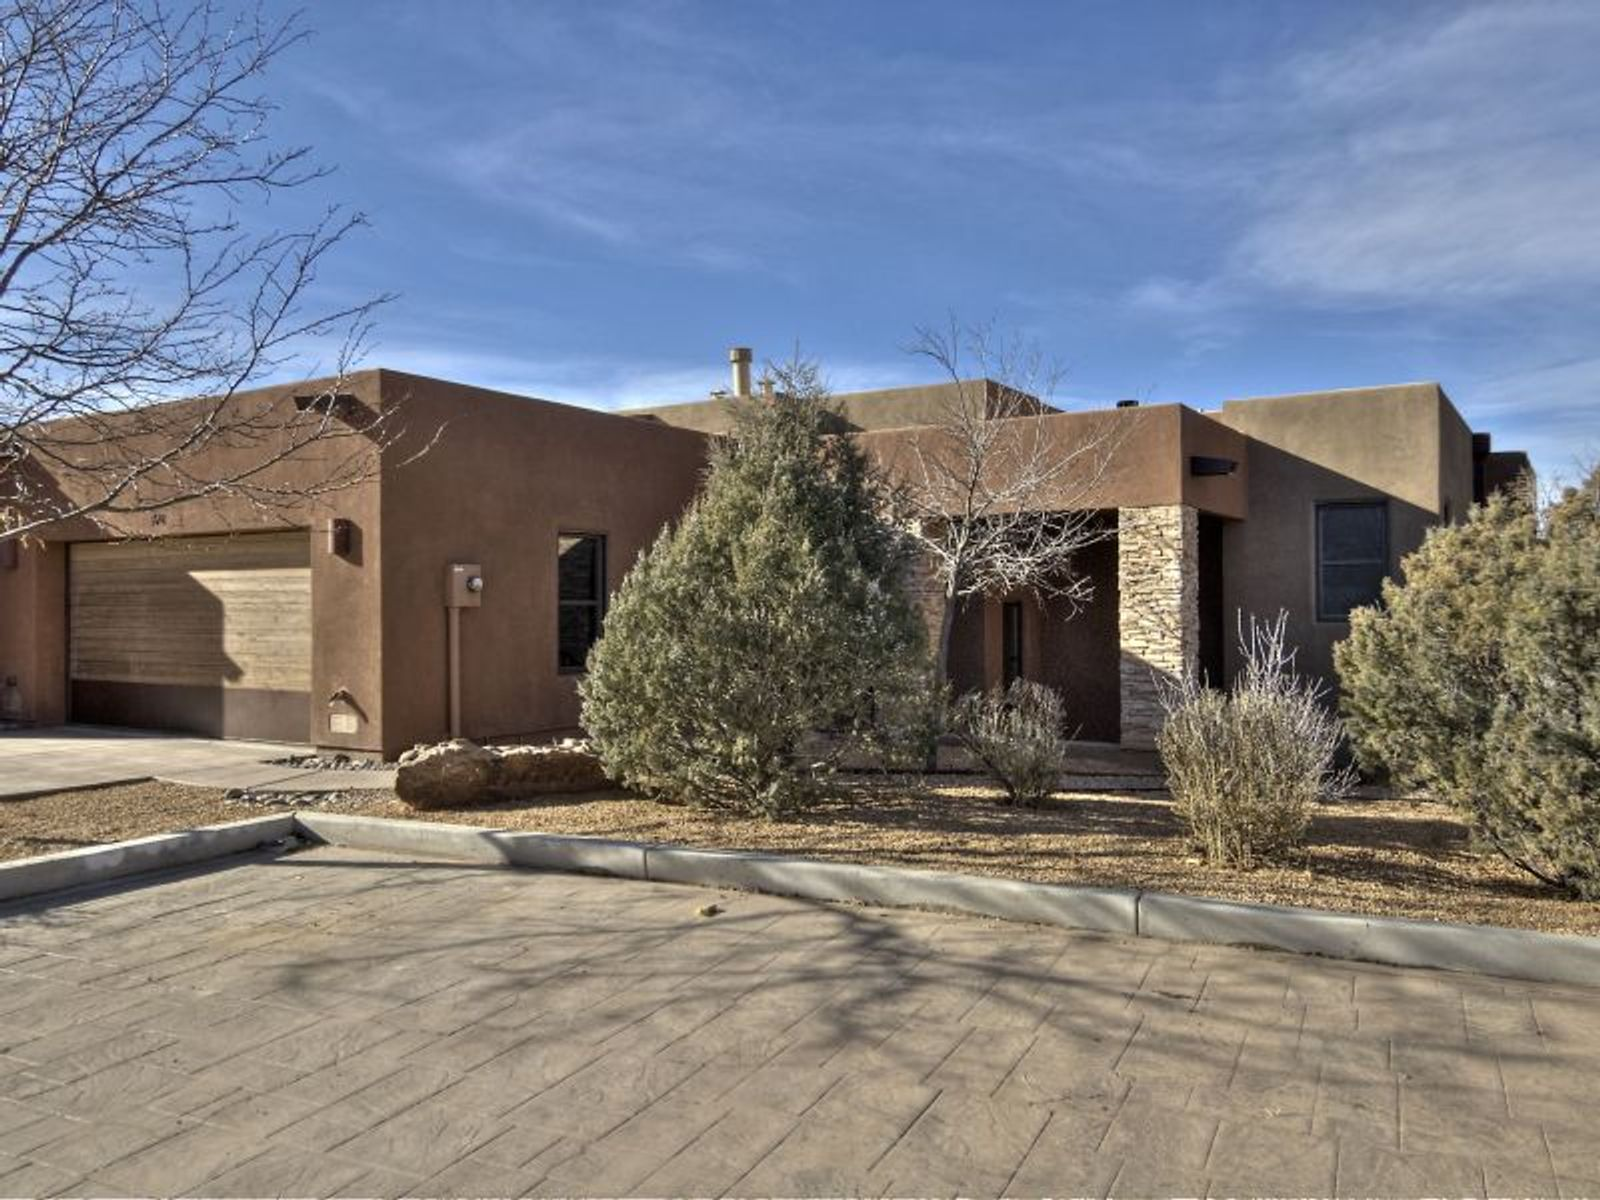 1612 Villa Strada, Santa Fe NM Single Family Home - Santa Fe Real Estate